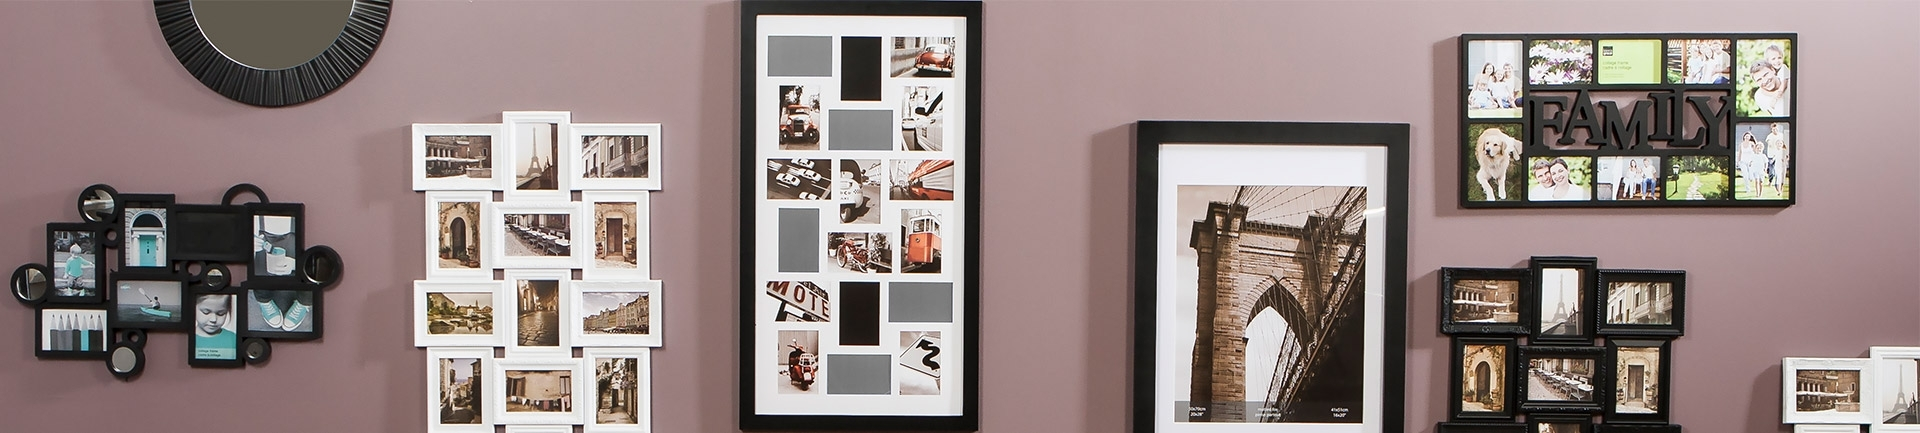 Photo Frames | Home & Decor | Jysk Canada For 2018 Jysk Canvas Wall Art (Gallery 10 of 15)